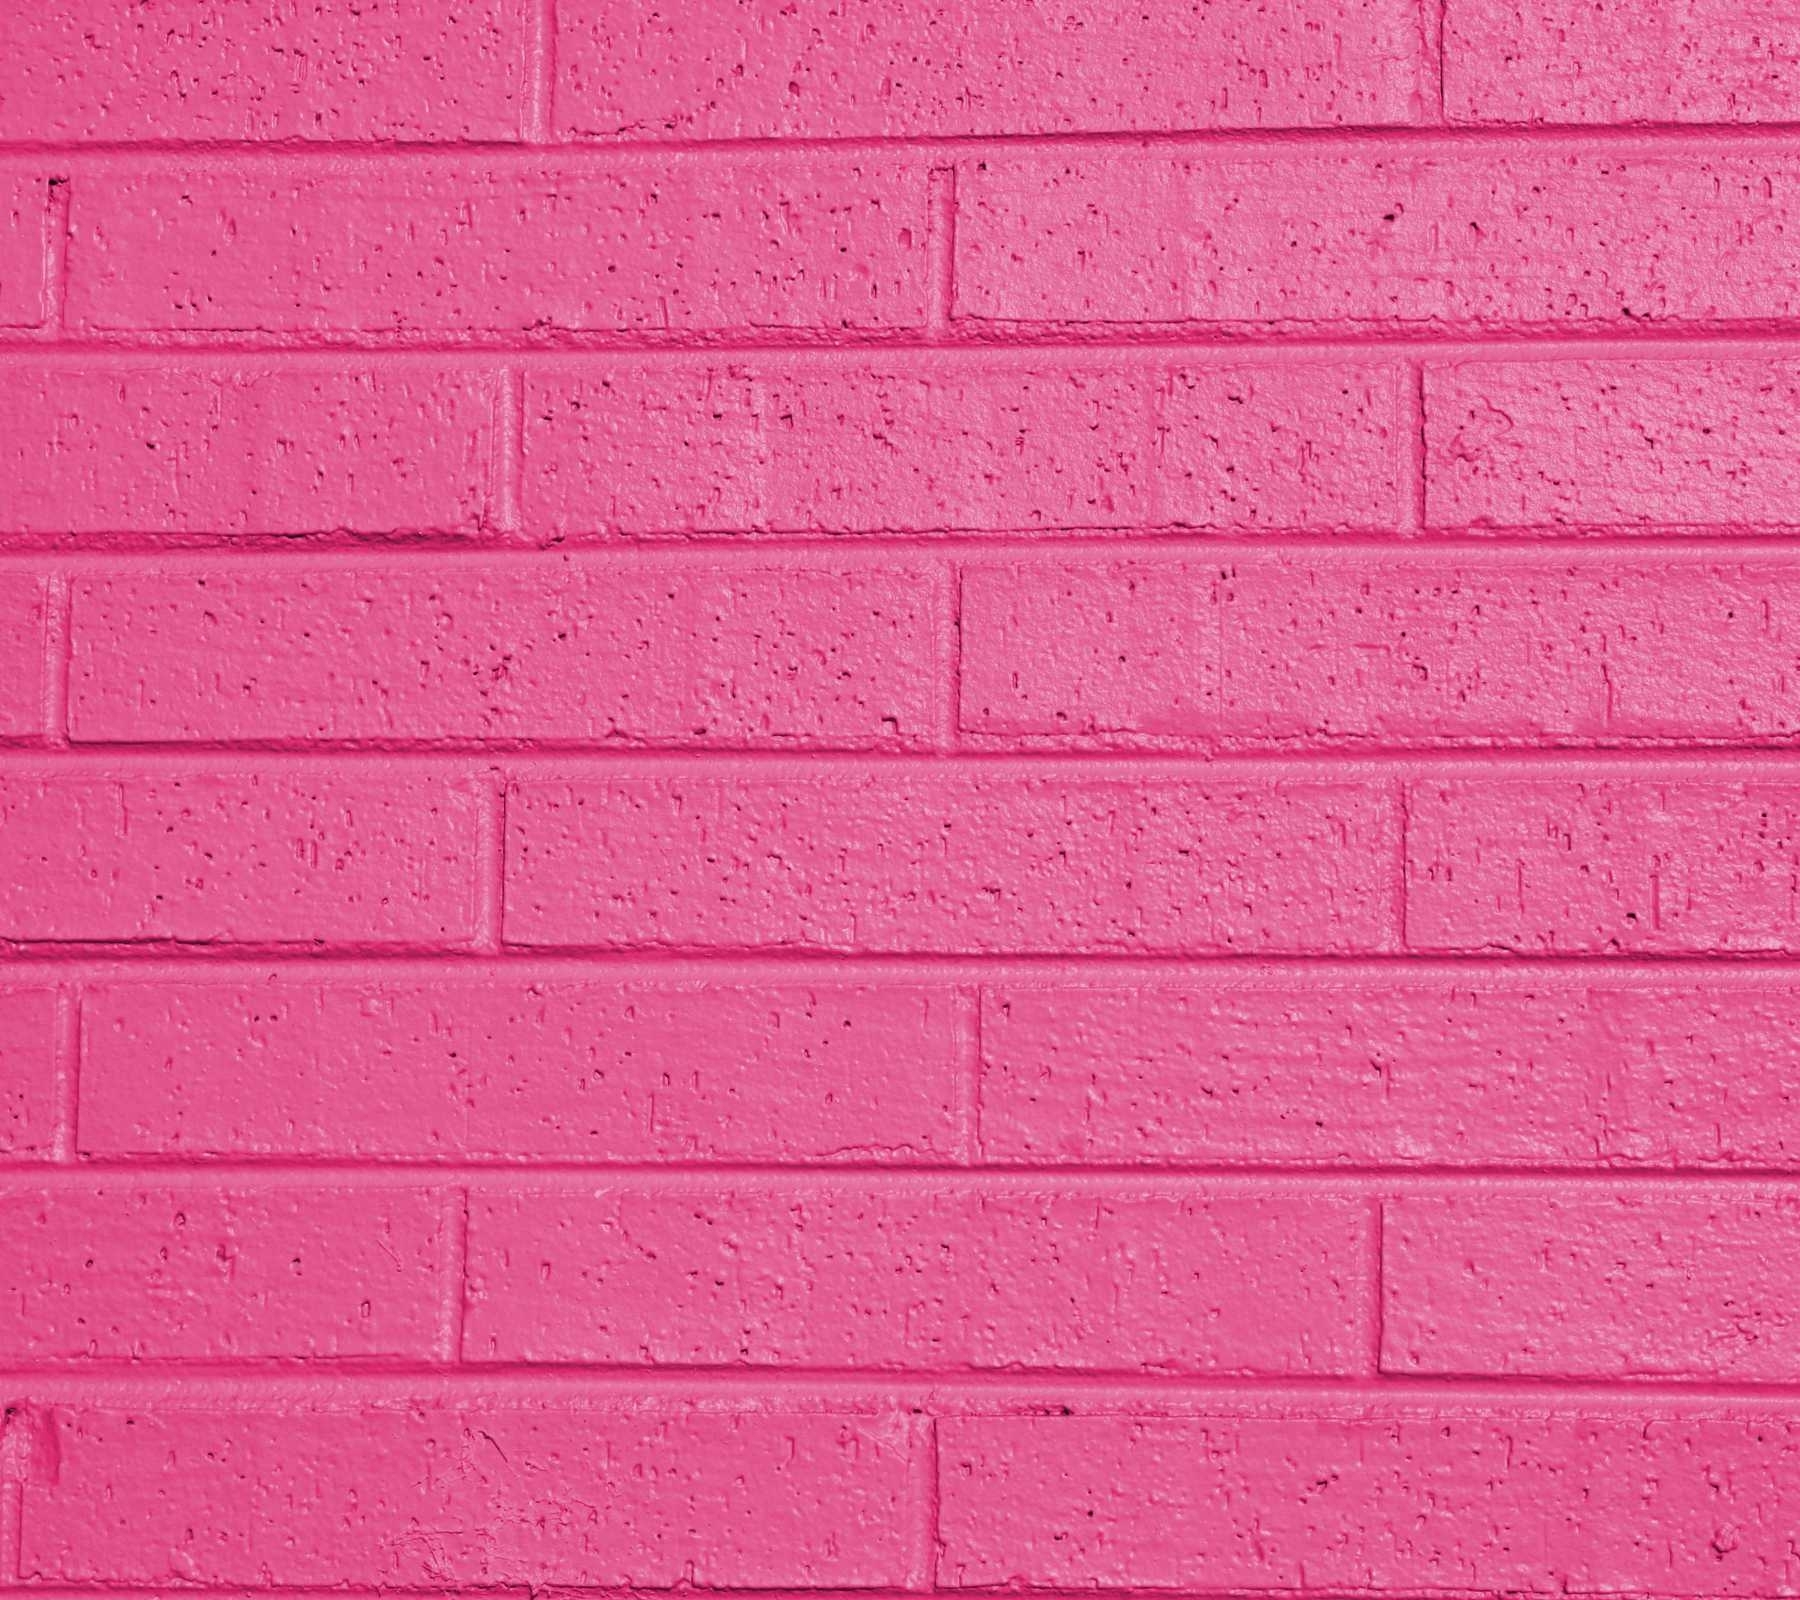 neon pink background wallpaper, go29 hdq wallpapers for desktop and